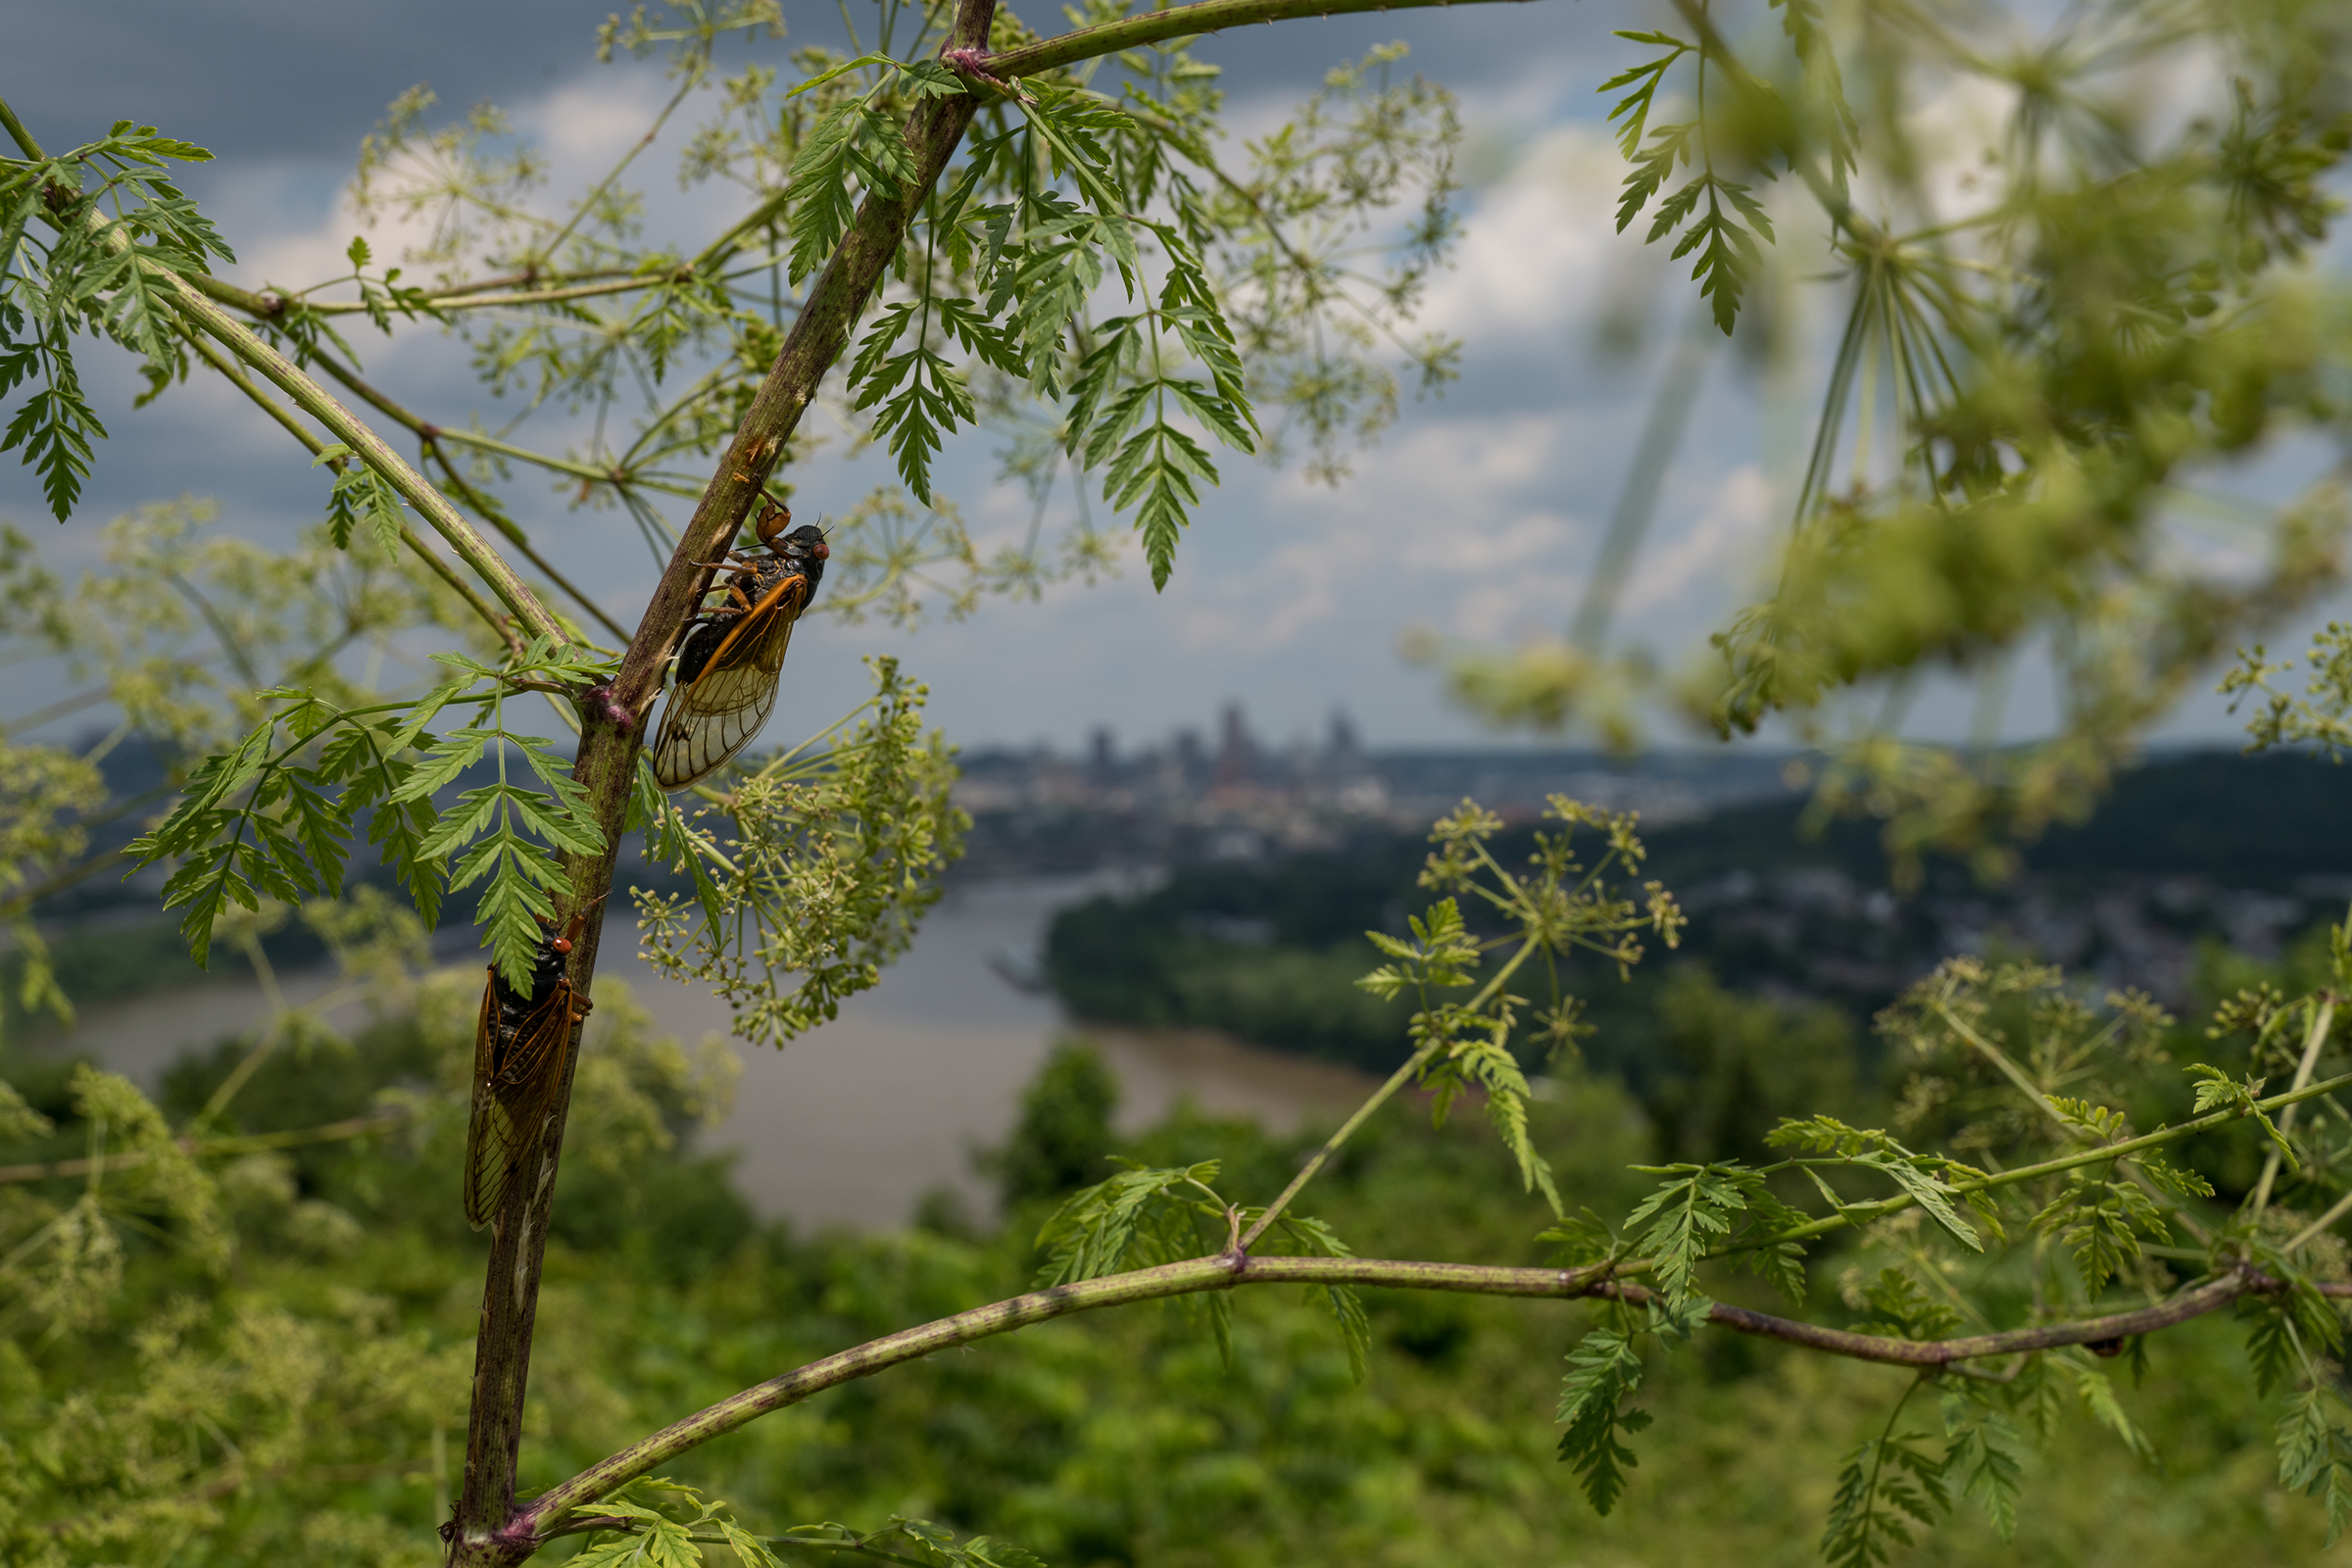 Cicadas call from near the top of a shrub with the Cincinnati, Ohio skyline in the background.